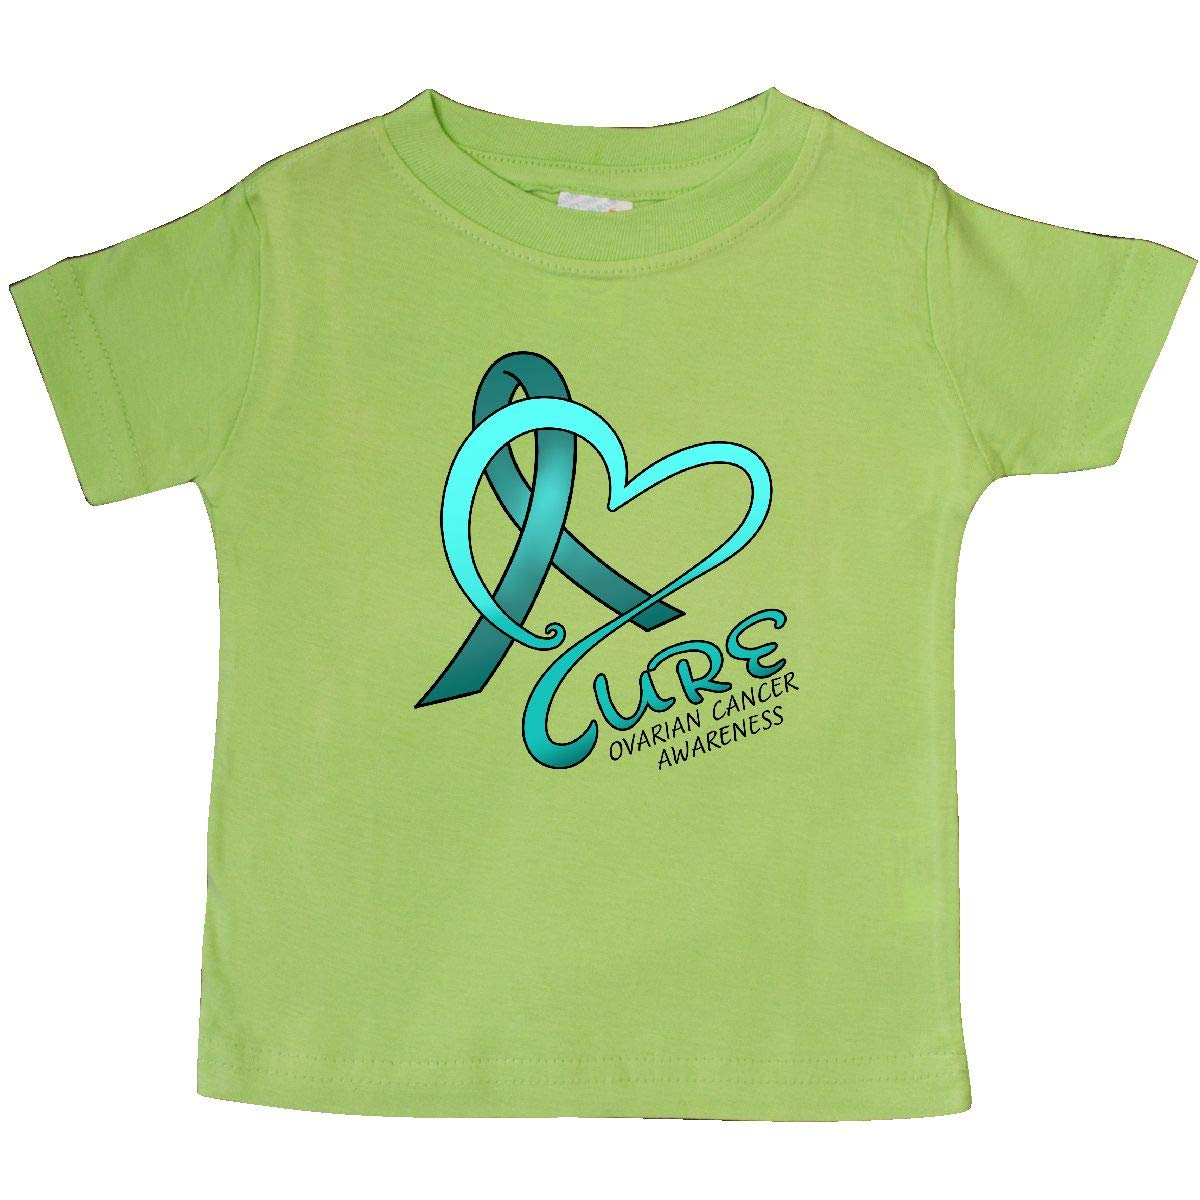 Ovarian Cancer Awareness Teal Ribbon Baby T-Shirt inktastic Cure